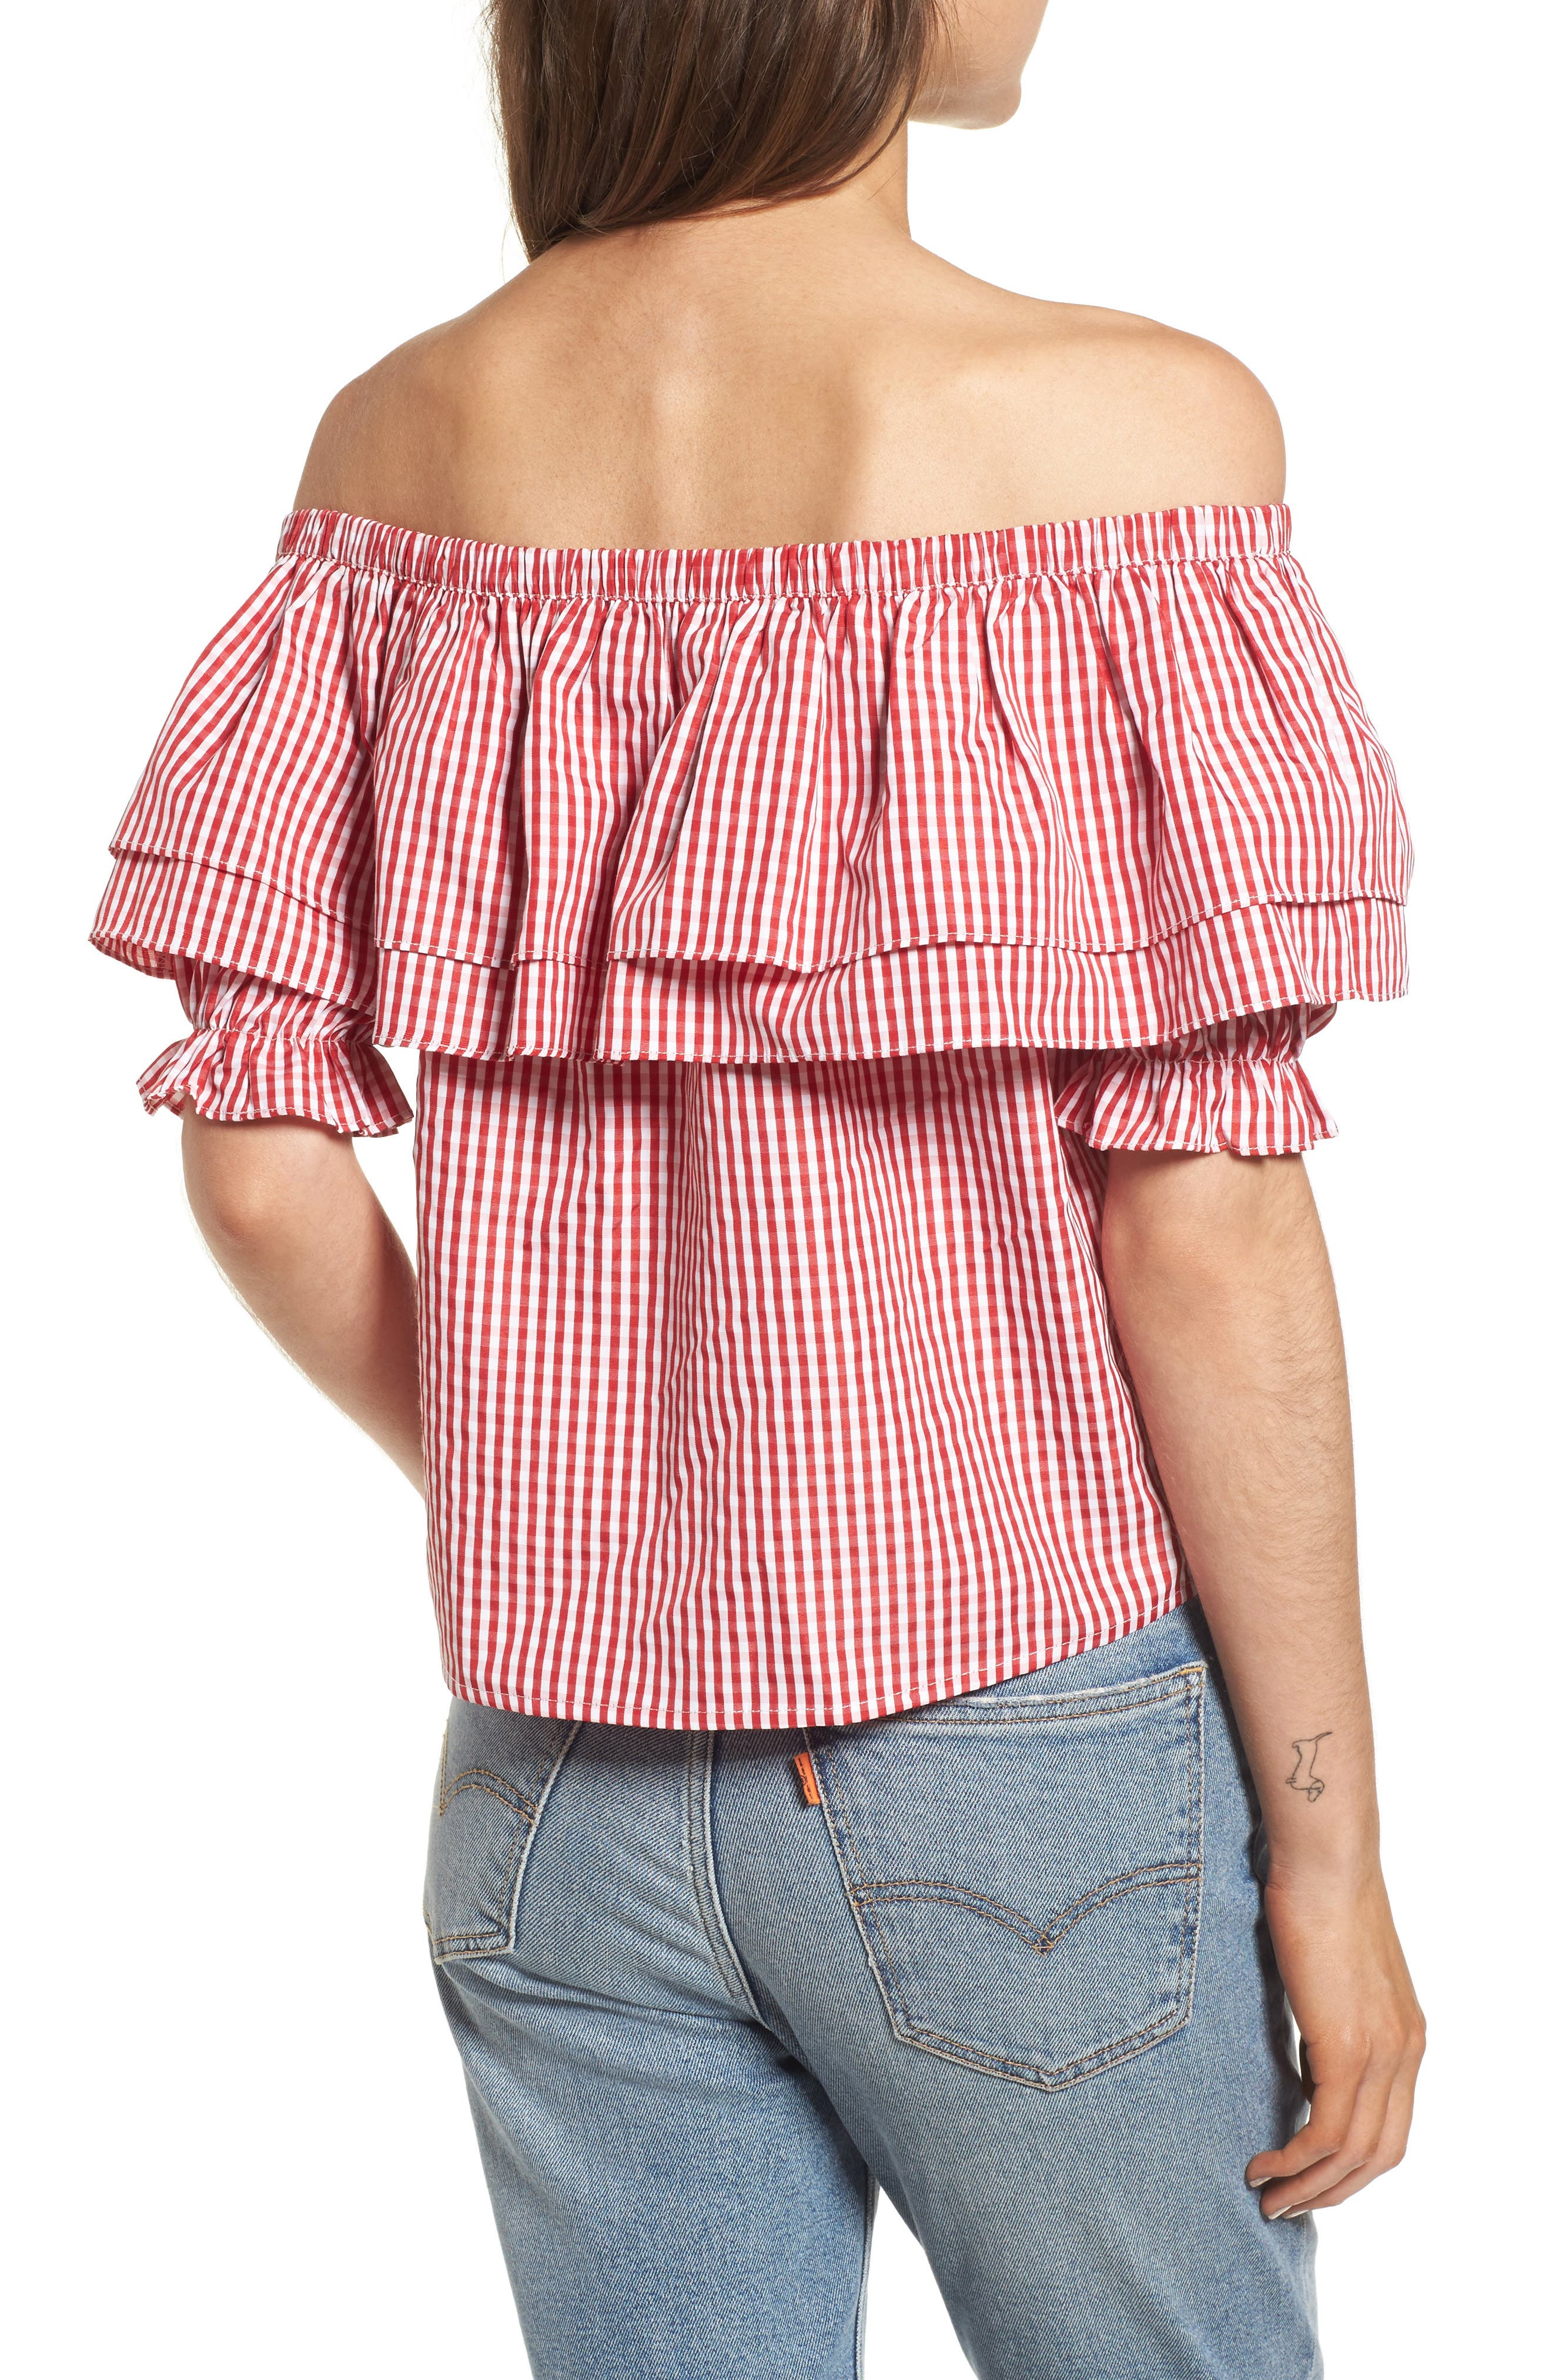 LOST + WANDER, Embroidered Gingham Off the Shoulder Top, Alternate thumbnail 2, color, 640